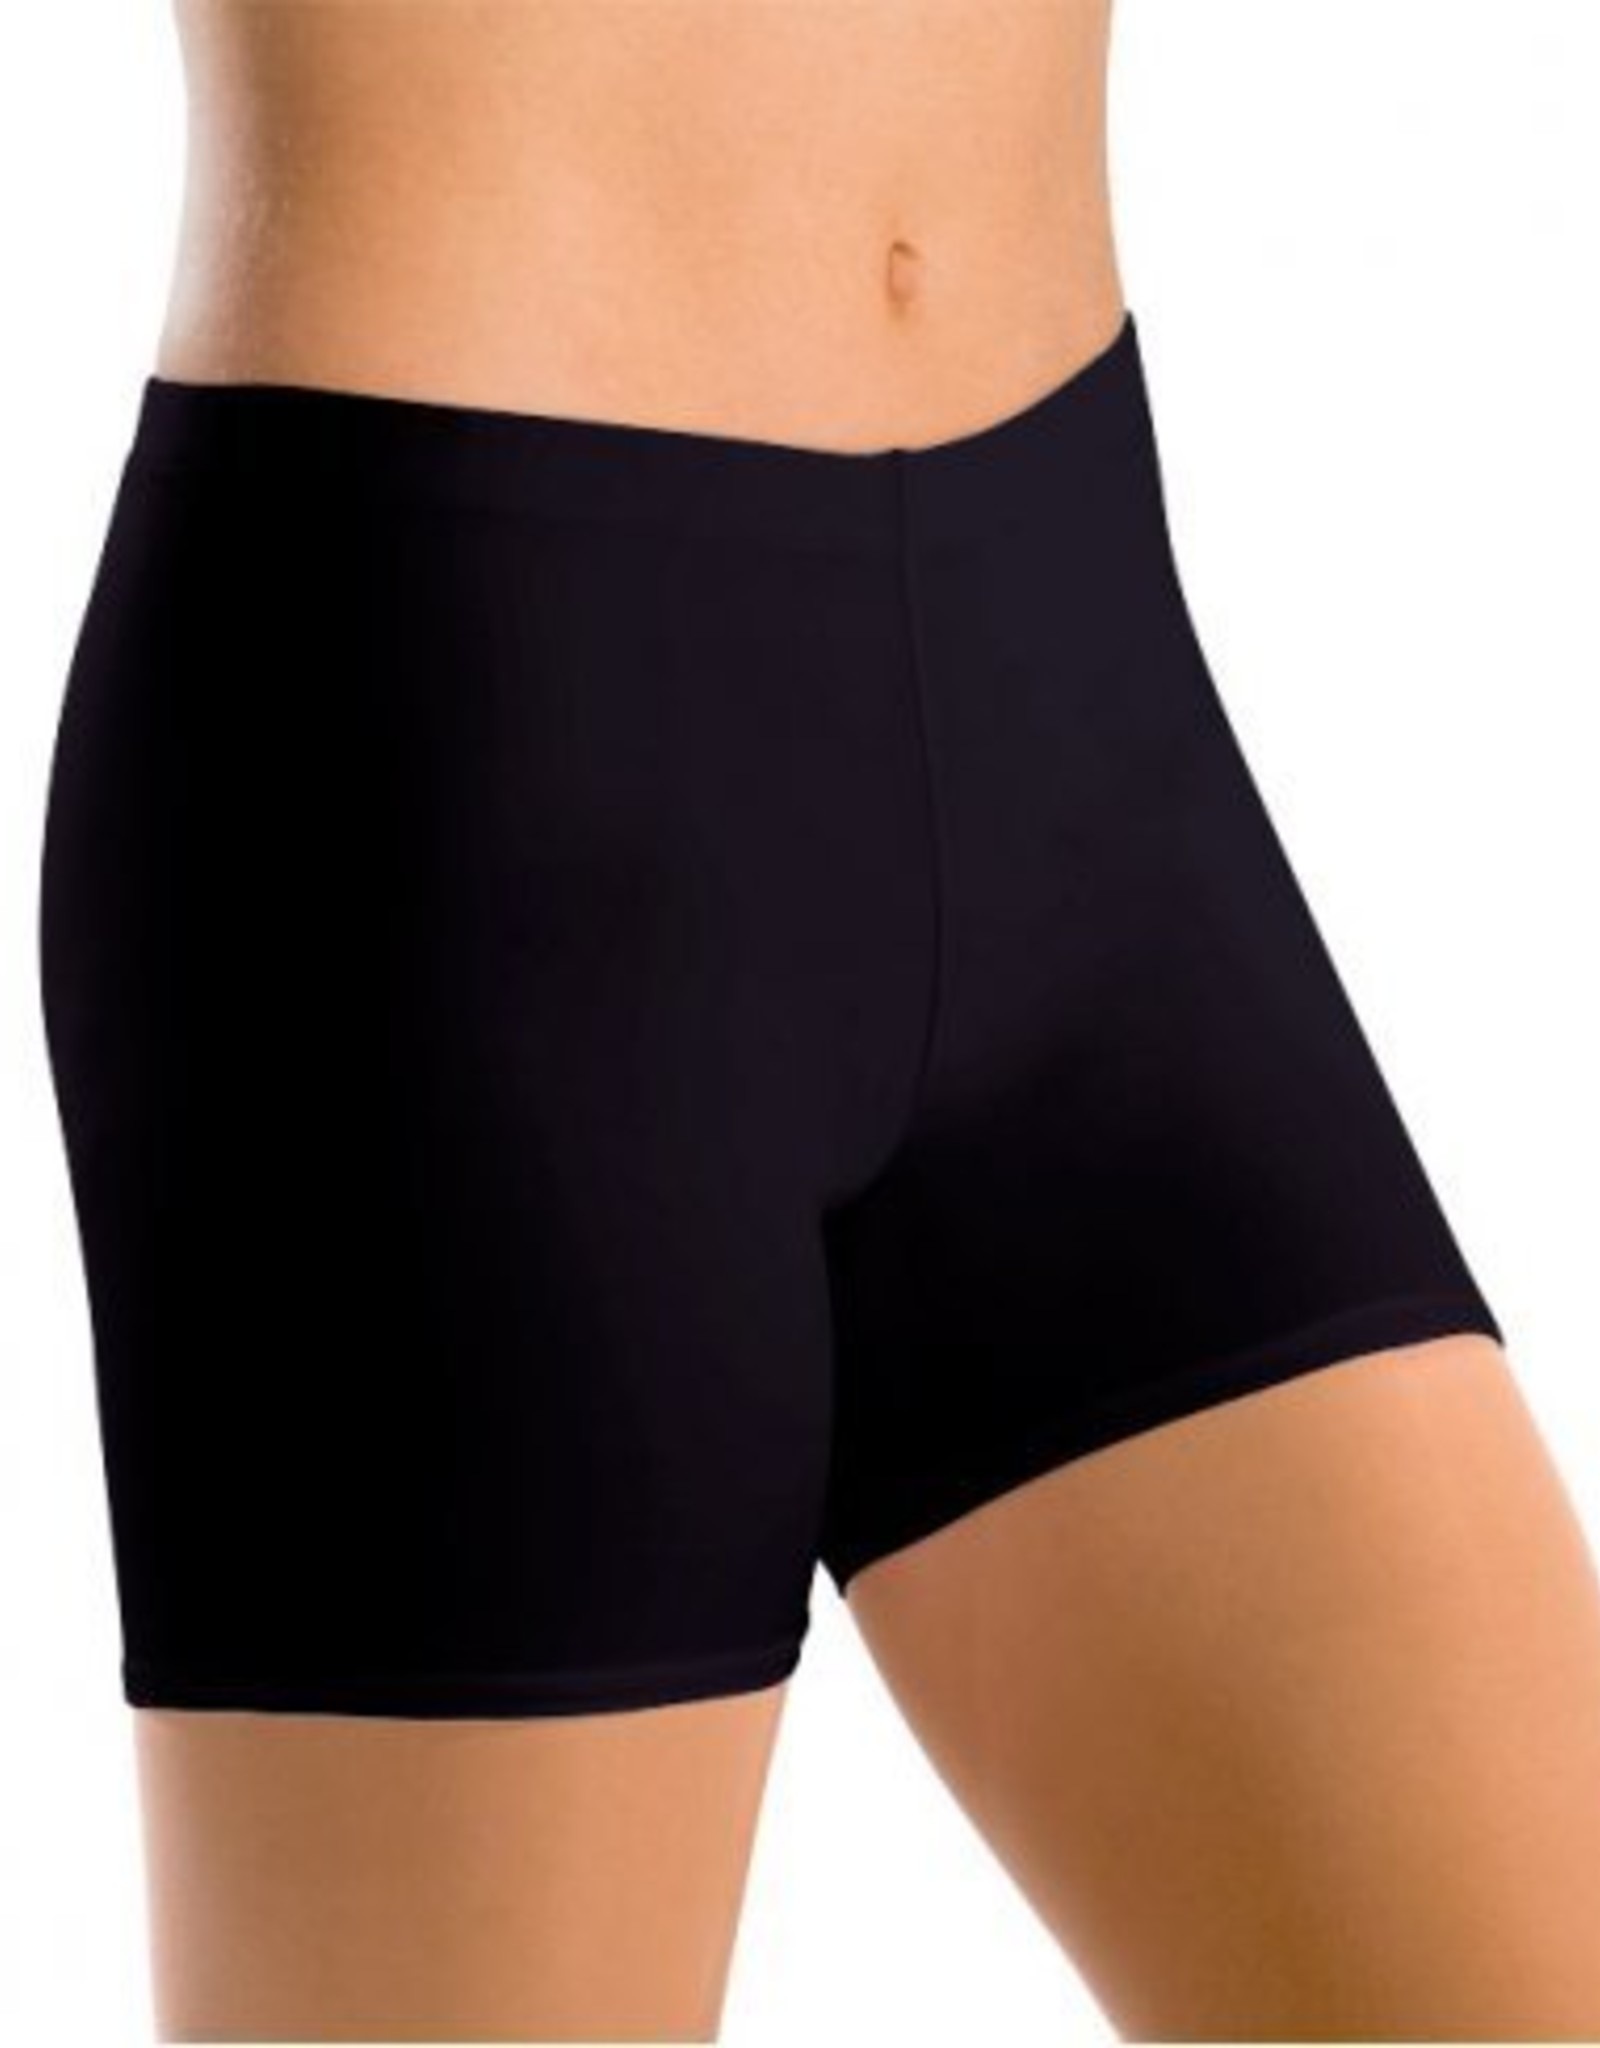 Motionwear 7084 Child Lower Rise Bike Shorts